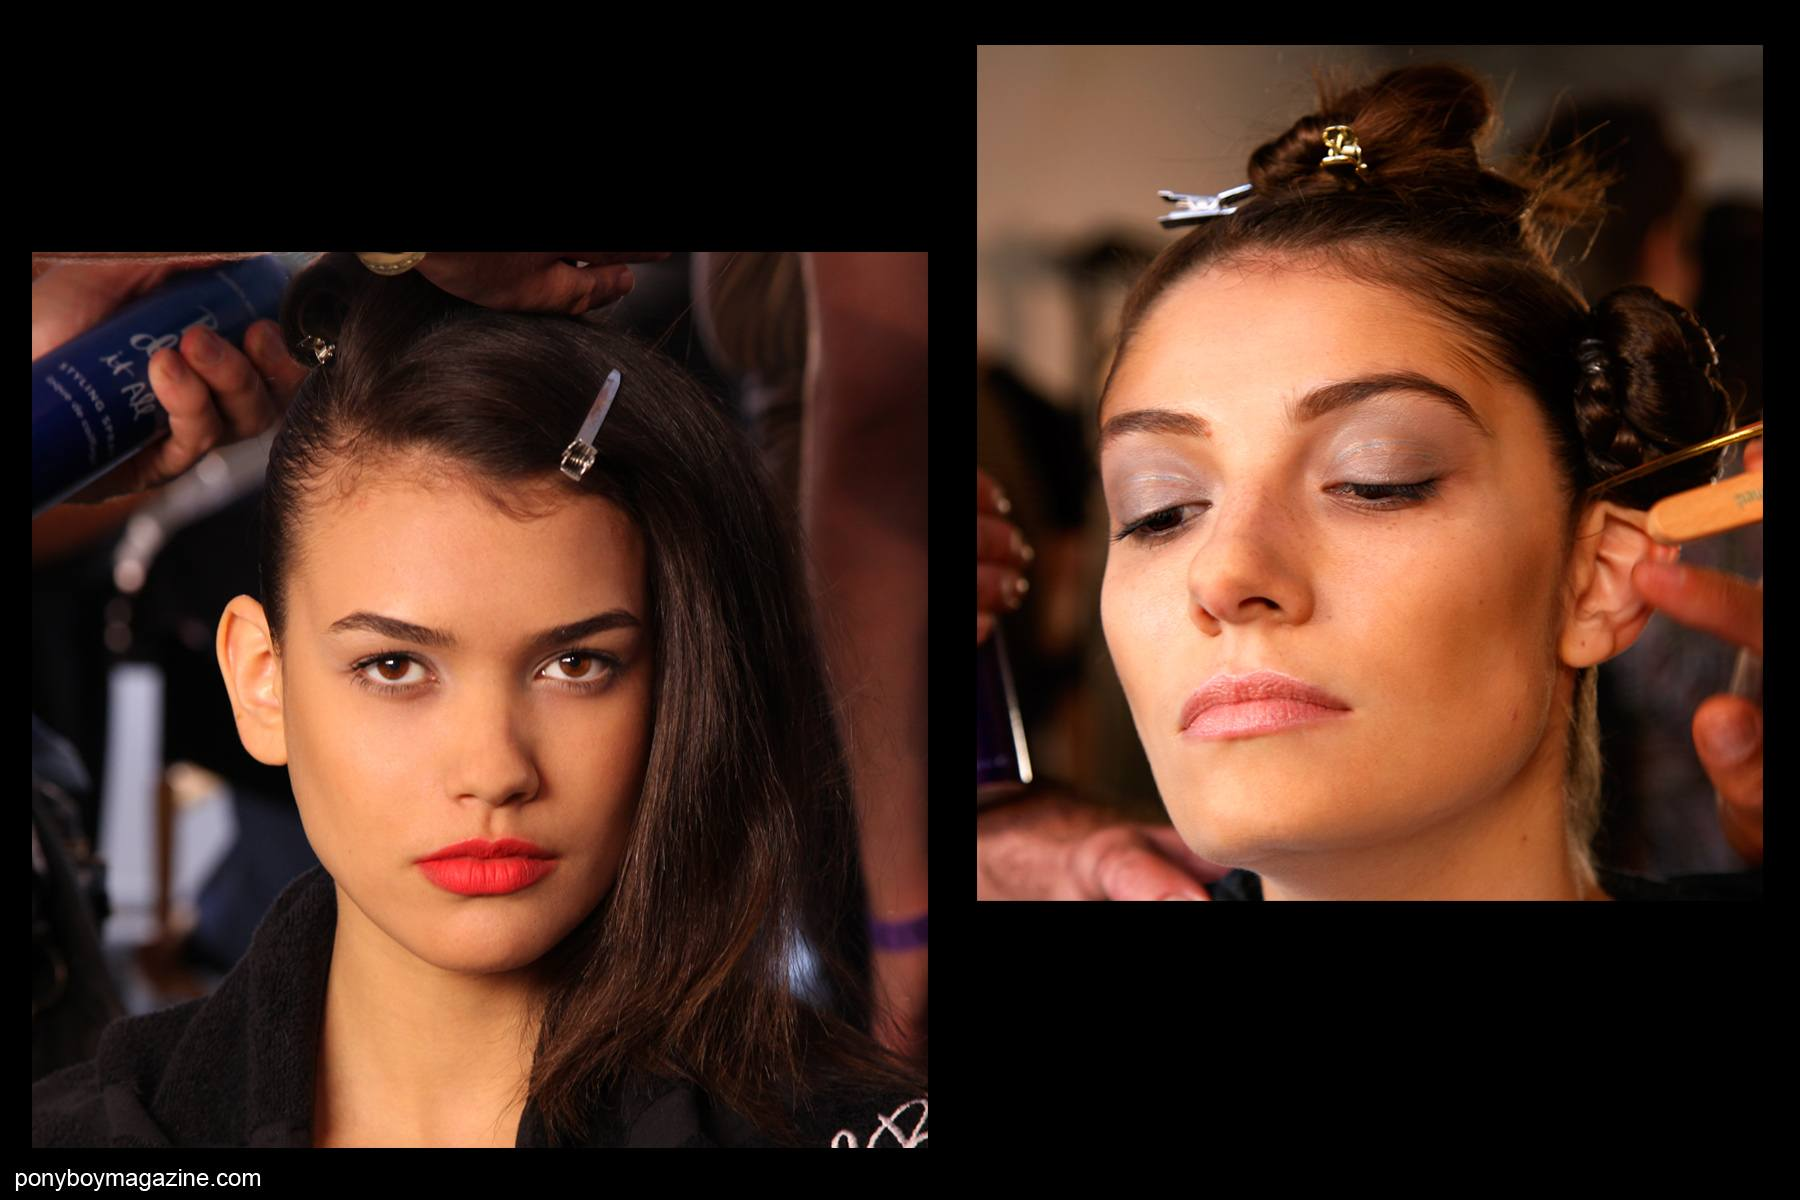 Backstage beauties photographed by Alexander Thompson for Ponyboy Magazine, at Alexandre Herchcovitch SS2014.